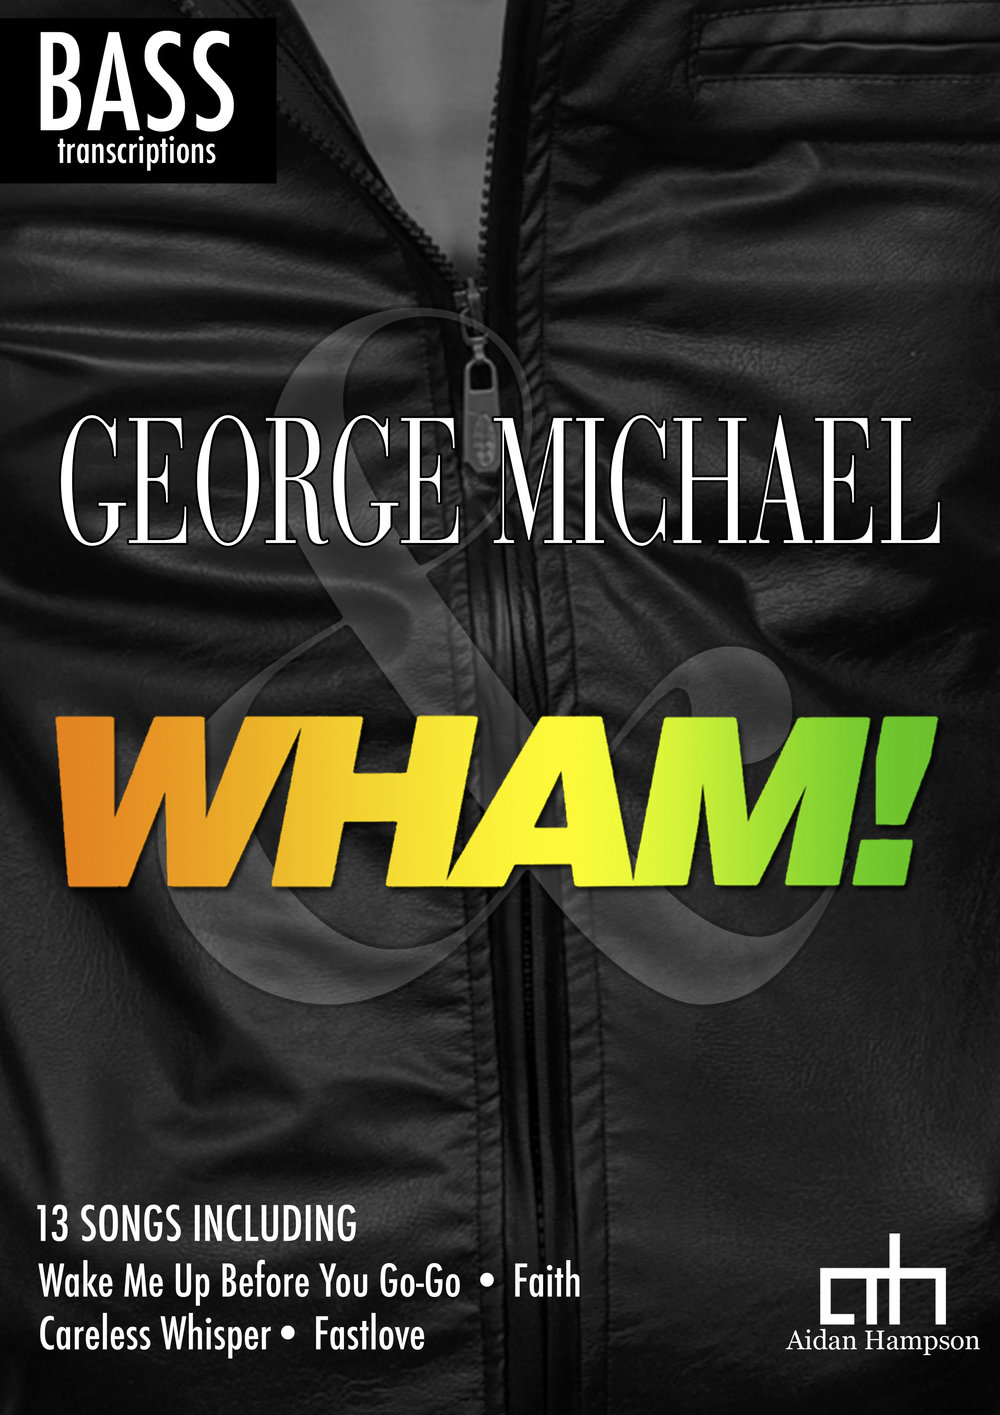 George Michael & Wham!